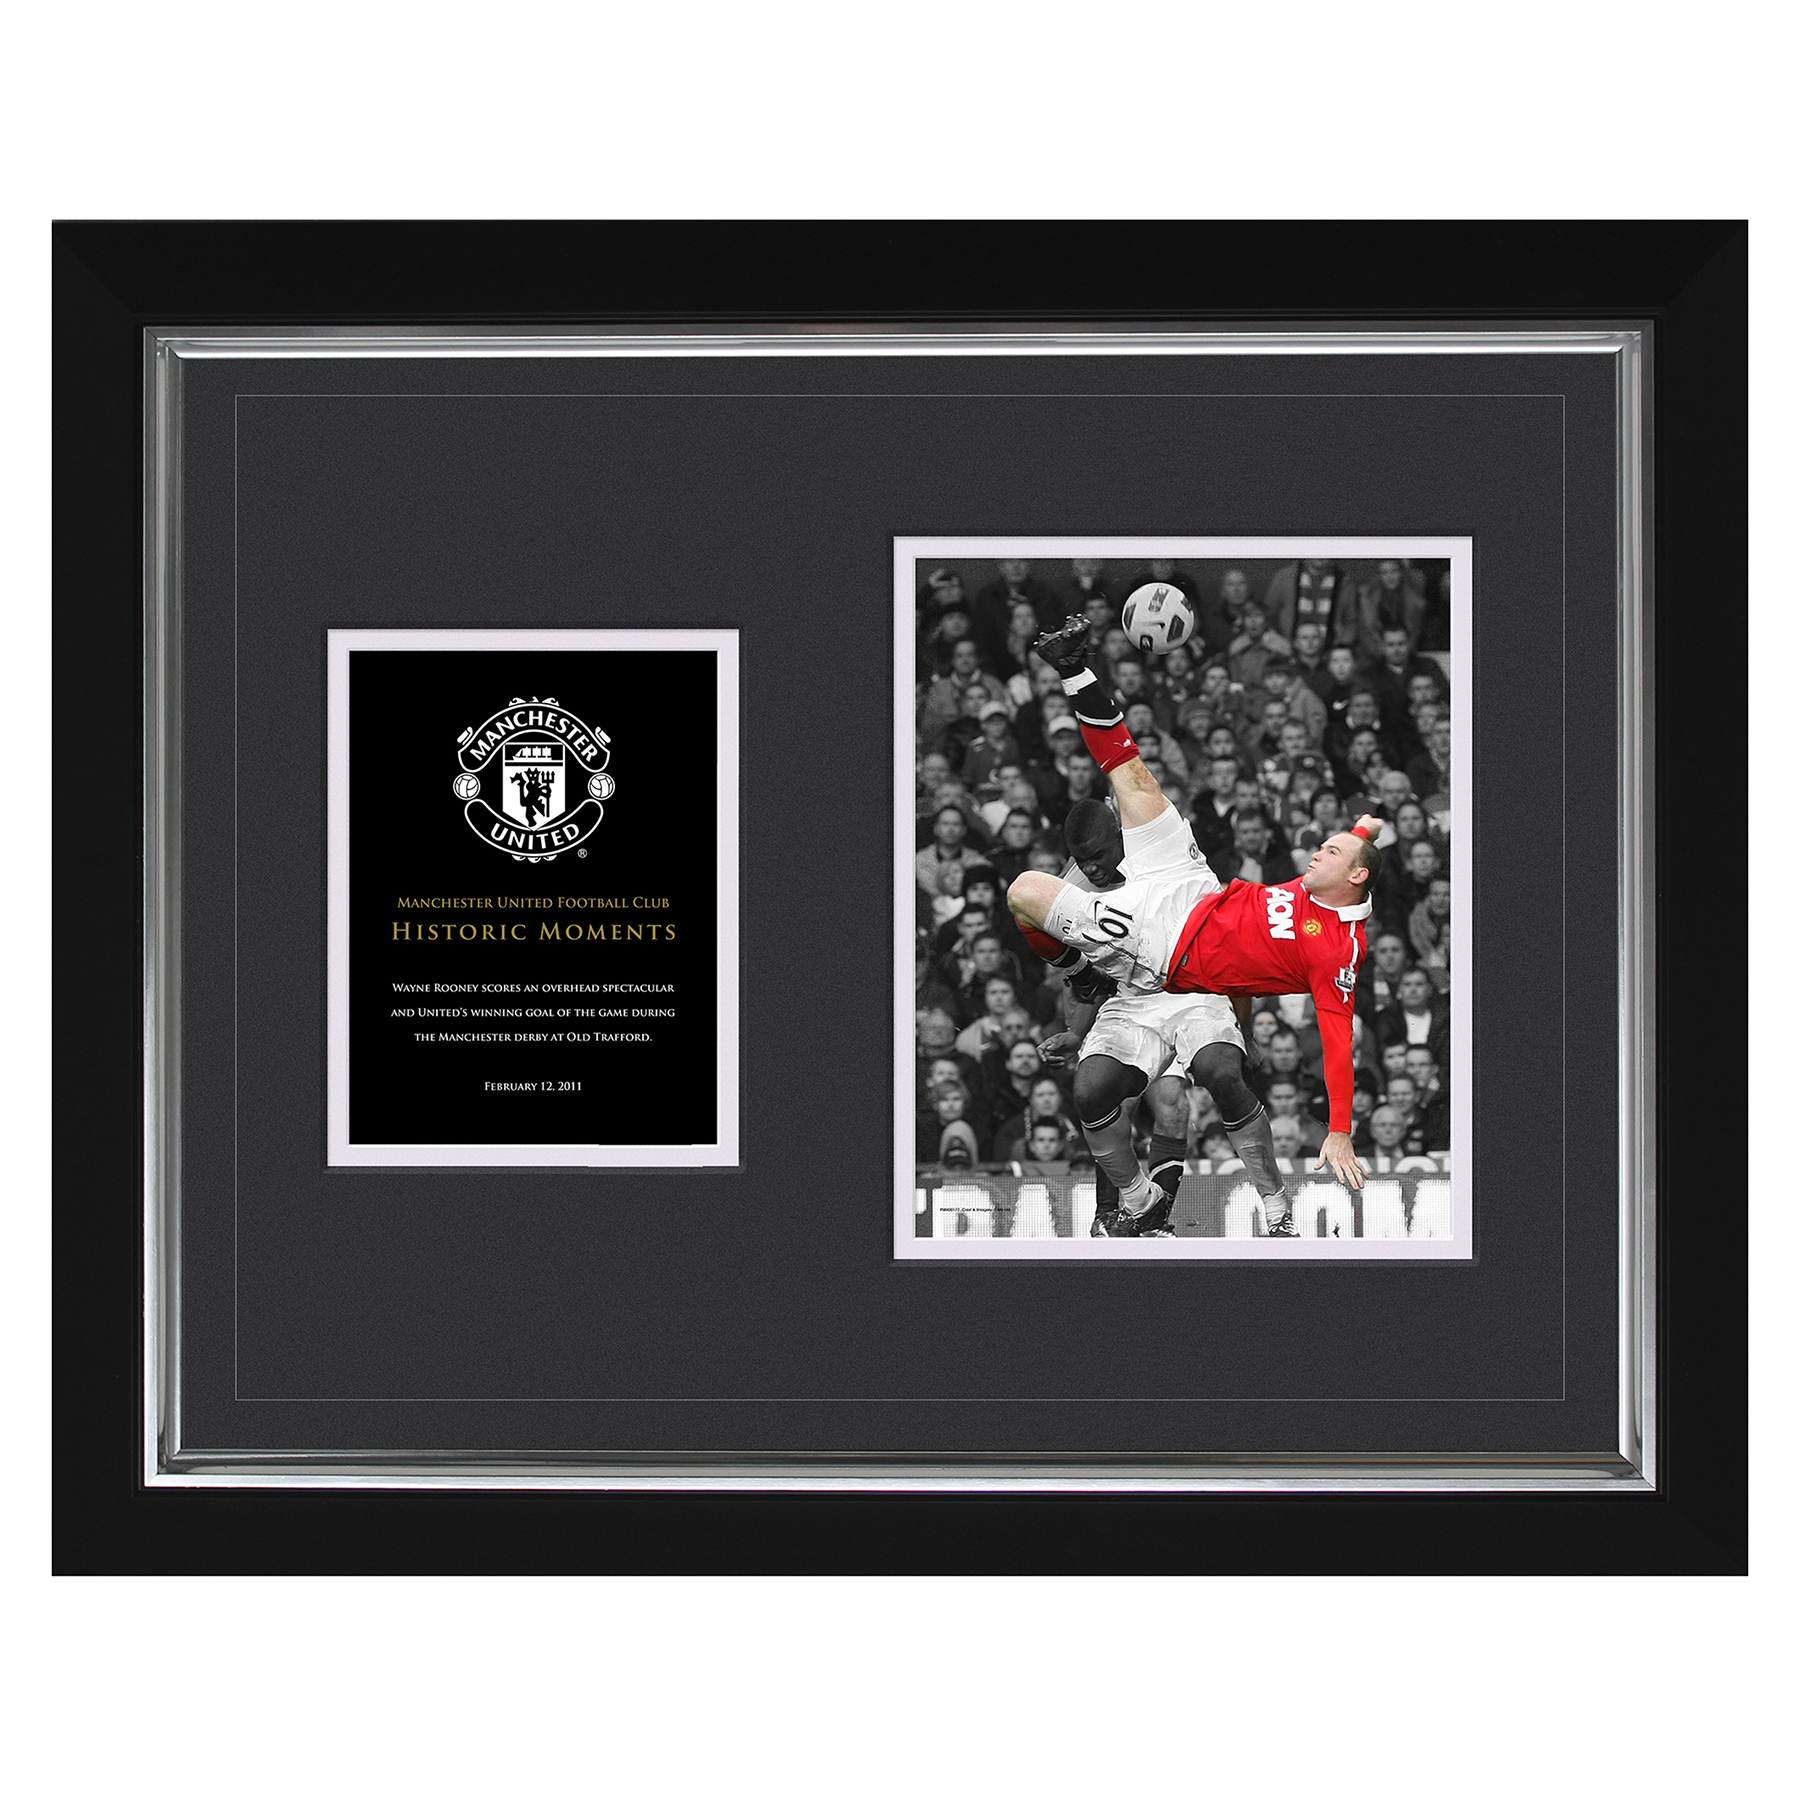 Manchester United Historic Moments - Rooney Overhead Kick Framed Print - 20 x 16